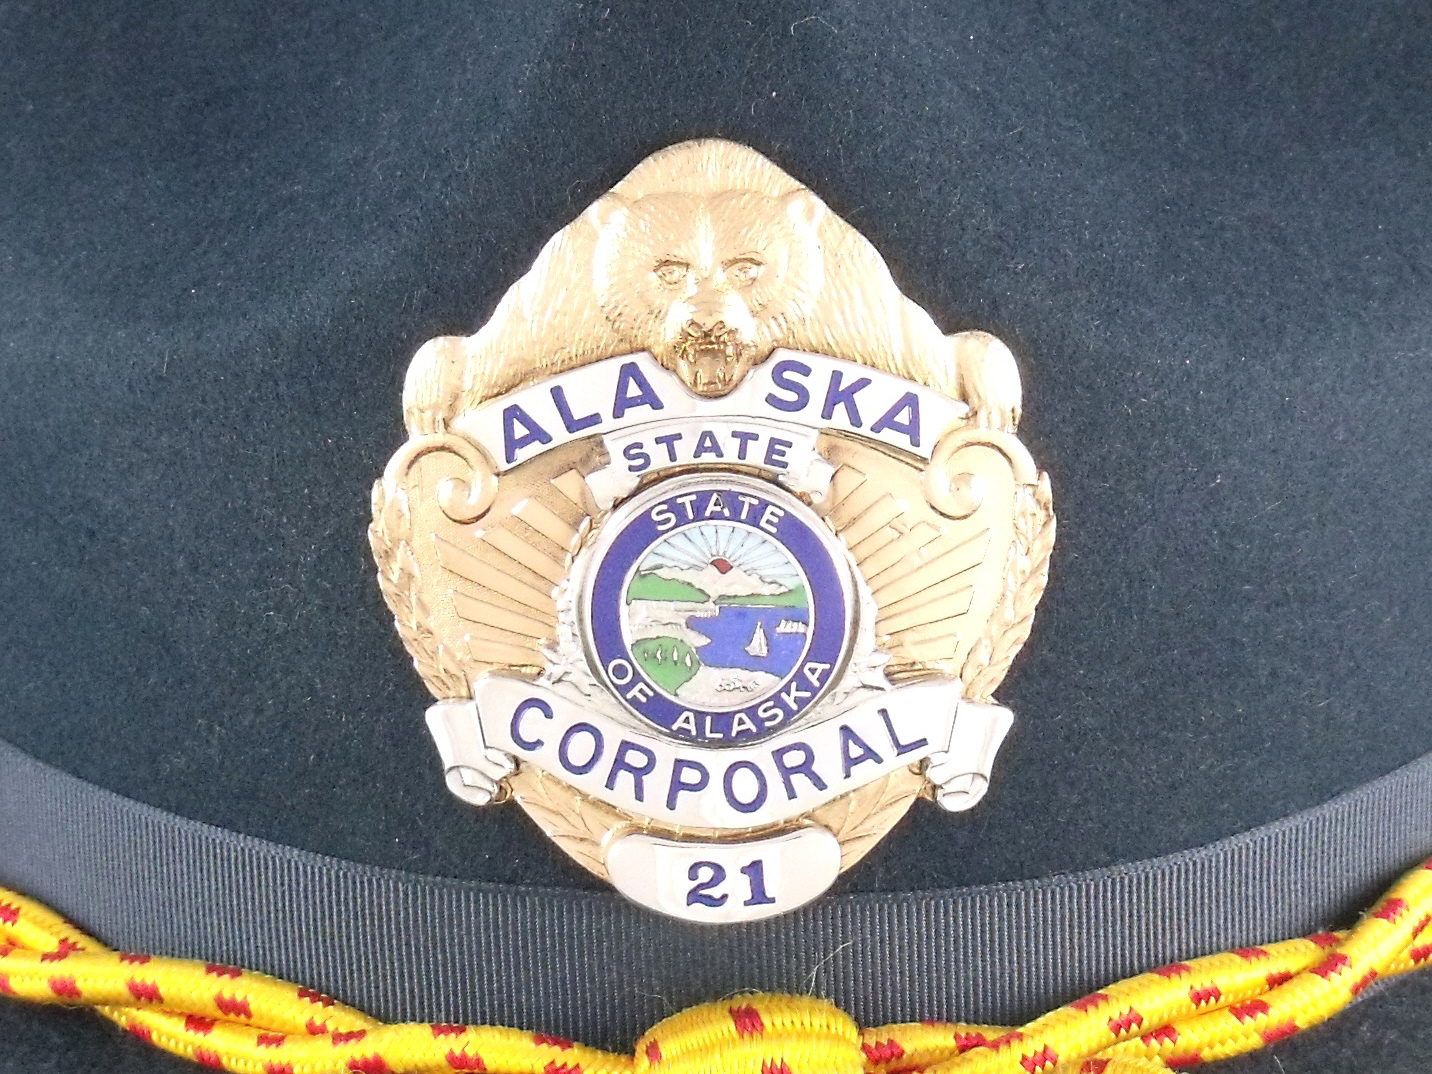 Alaska State Troopers hat badge